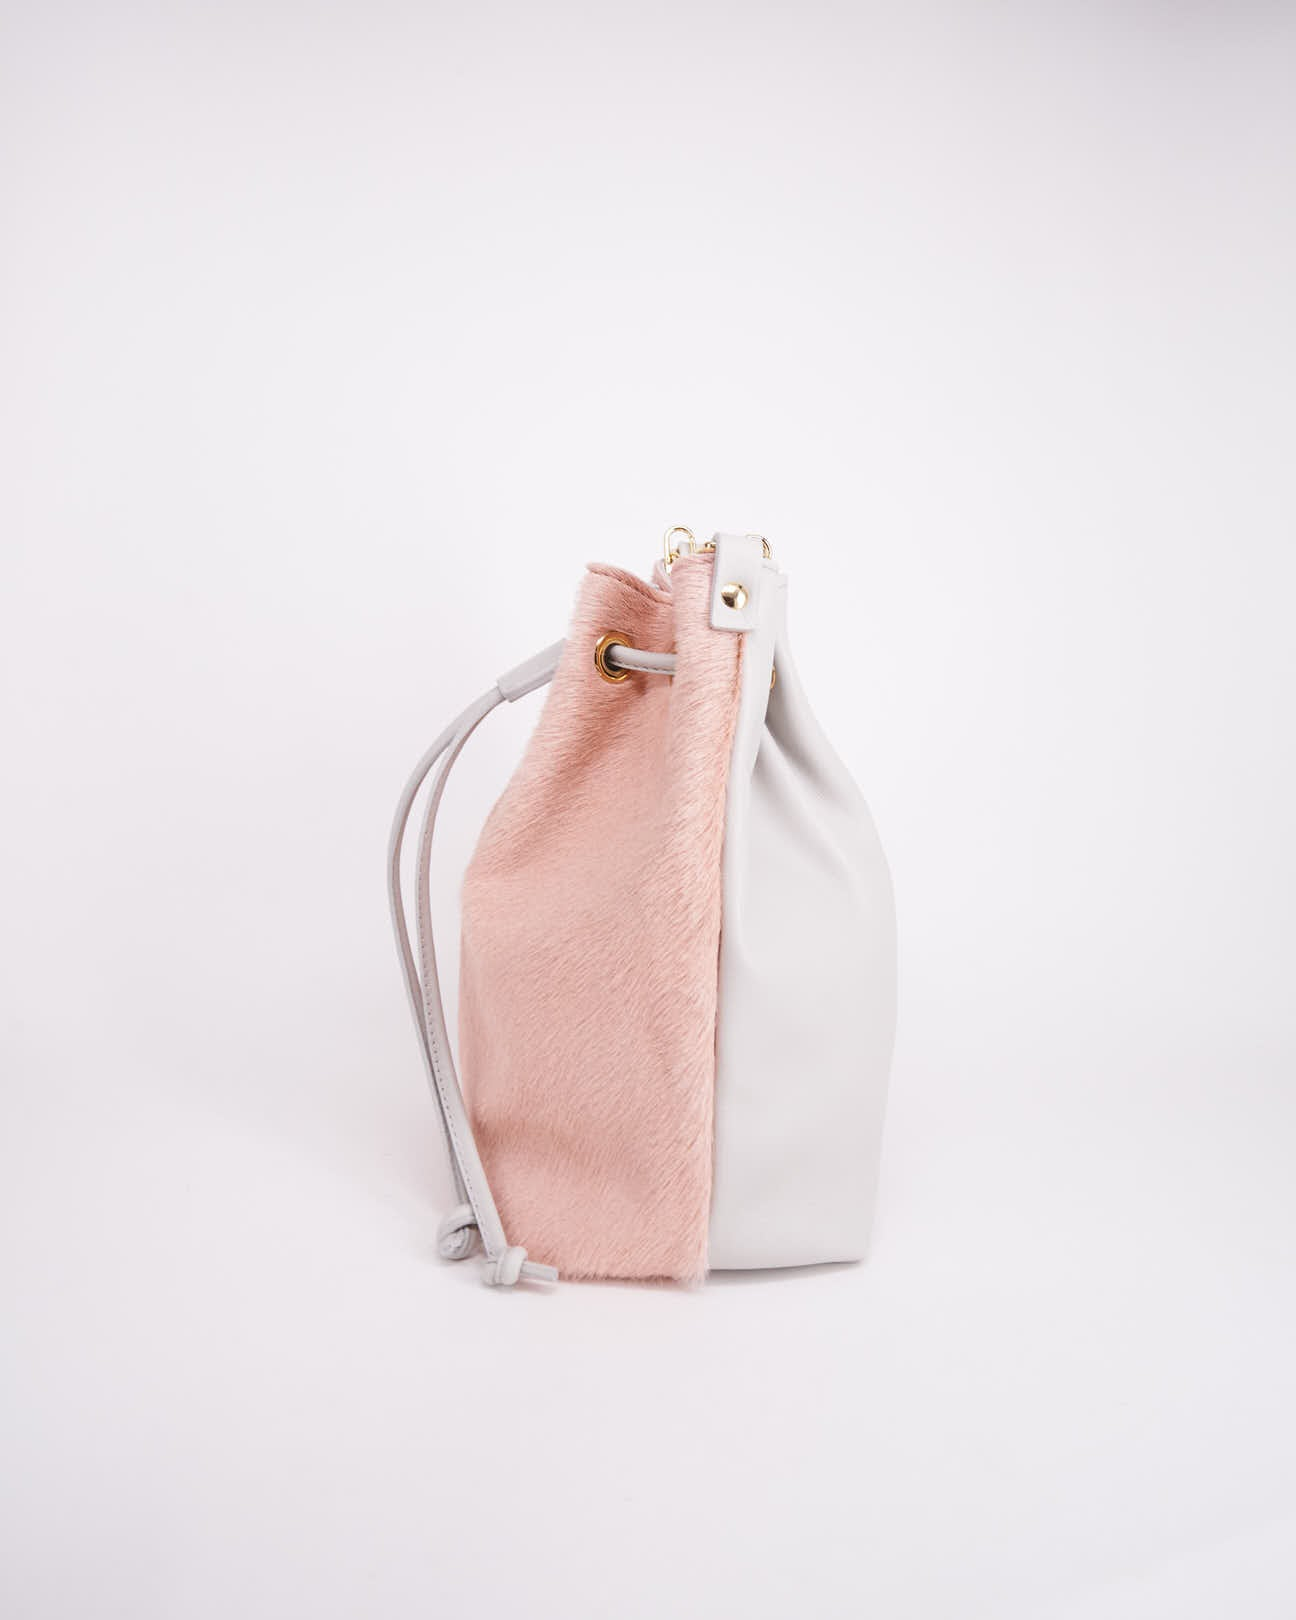 Bag-Nuo Sac-Nuovum-Leather-Pink-localdesigners-Barcelona-Nuovum-Handmade-side